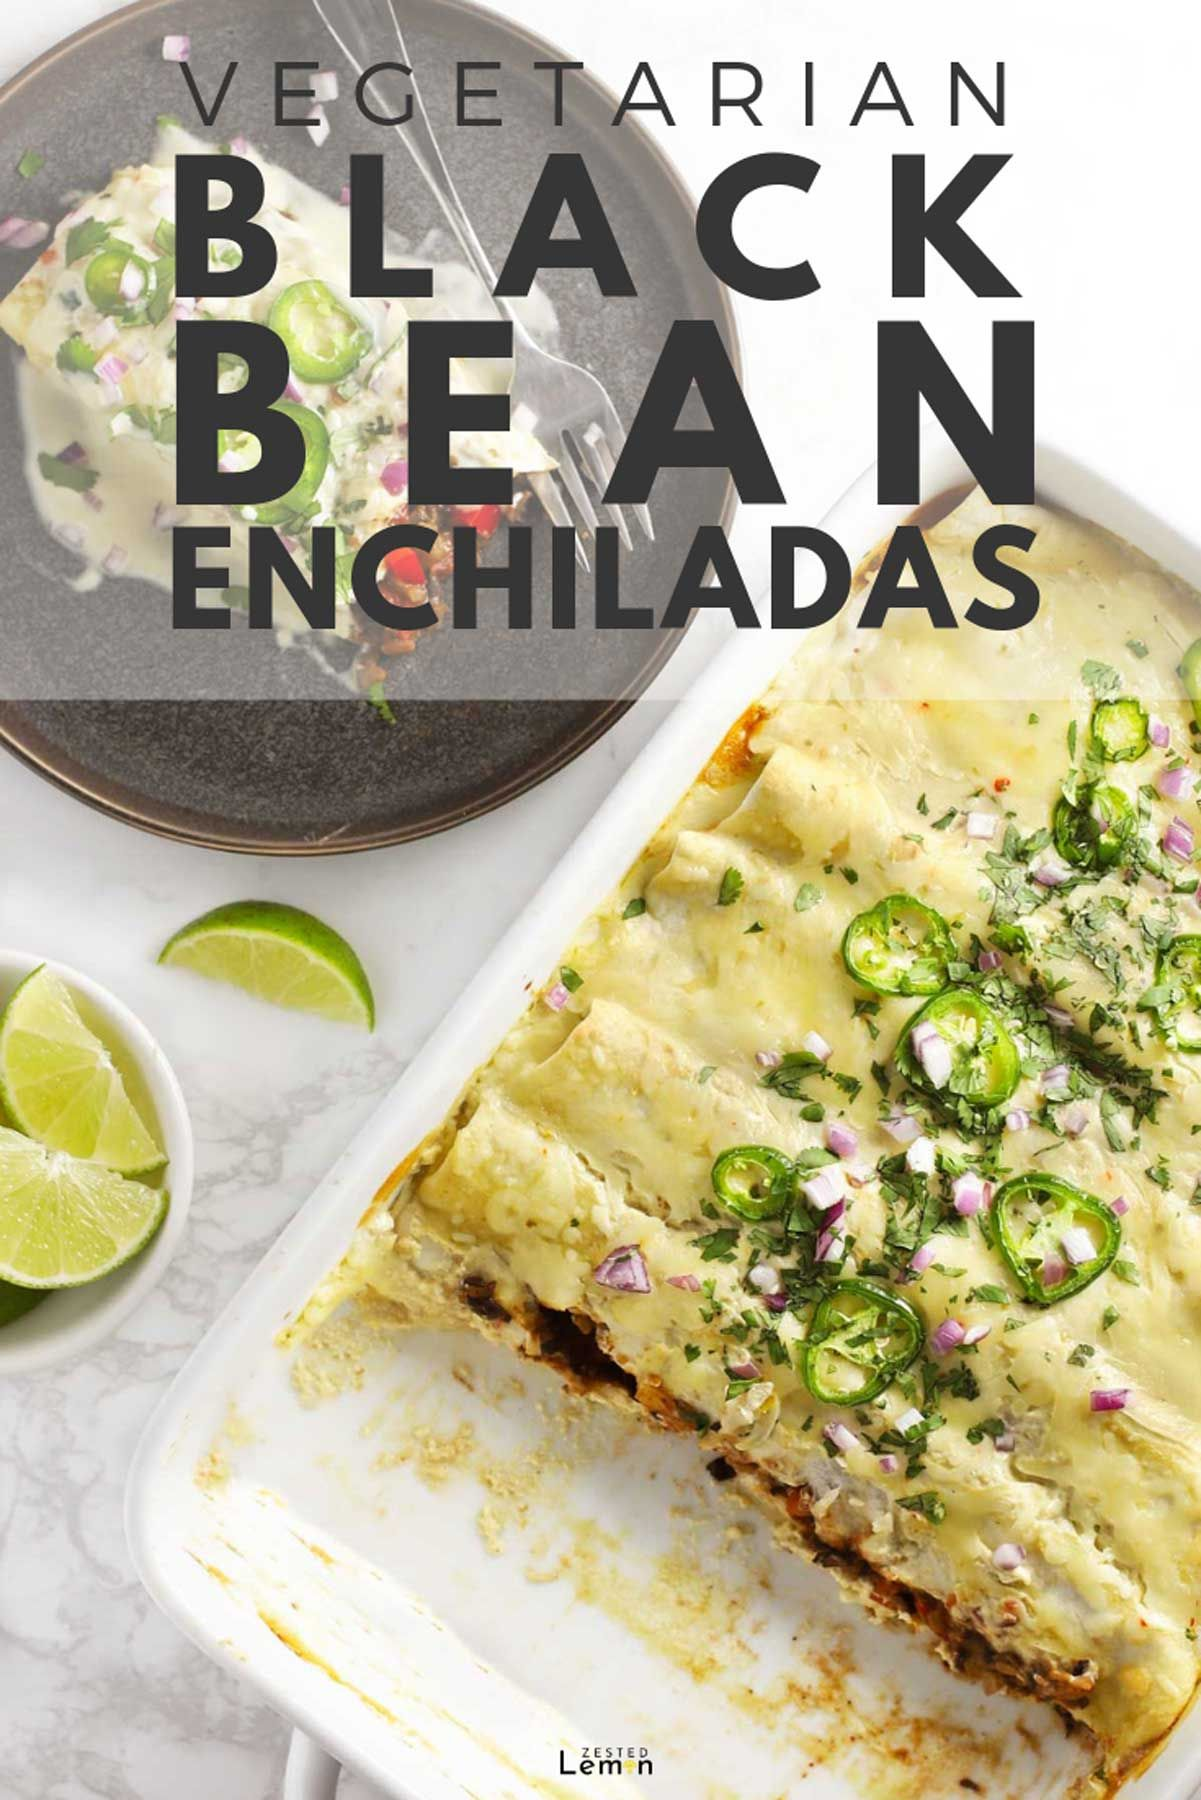 Vegetarian Black Bean Enchiladas This Vegetarian Black Bean Enchiladas recipe is healthy yet incredibly flavorful and satisfying. Best of all it is easy and the leftovers are awesome! |